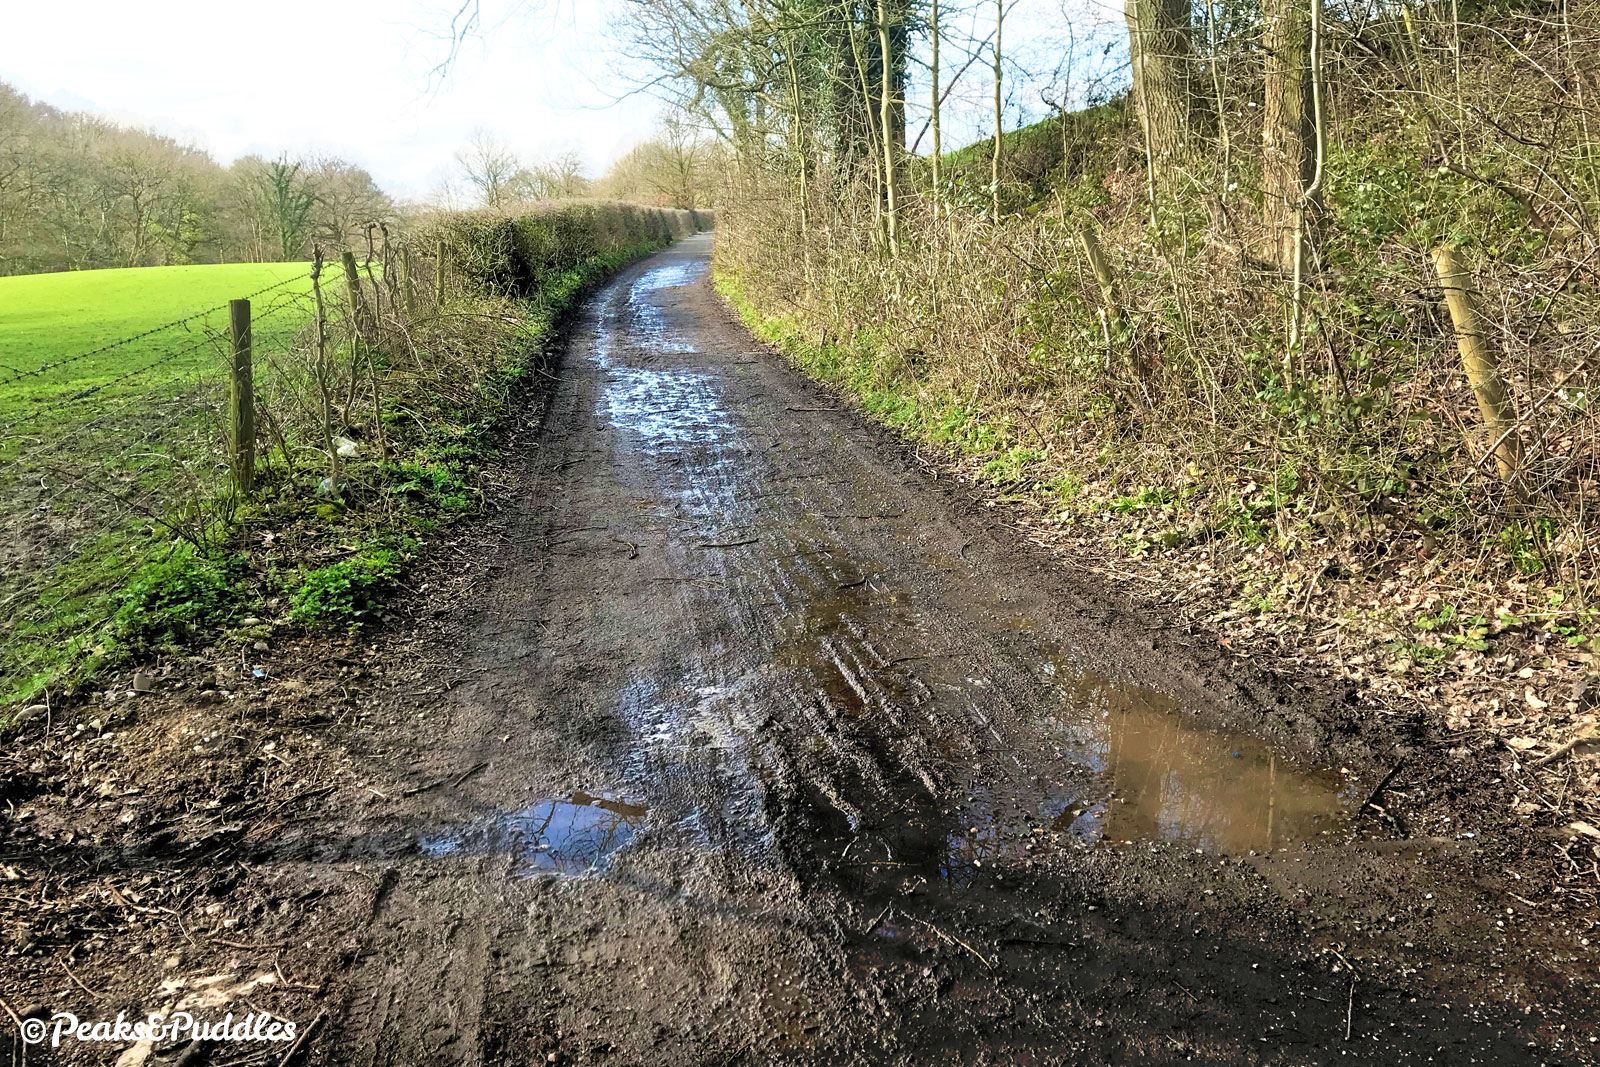 Seen in winter, or even a wet summer, many parts of the route have a wet, splattery surface.